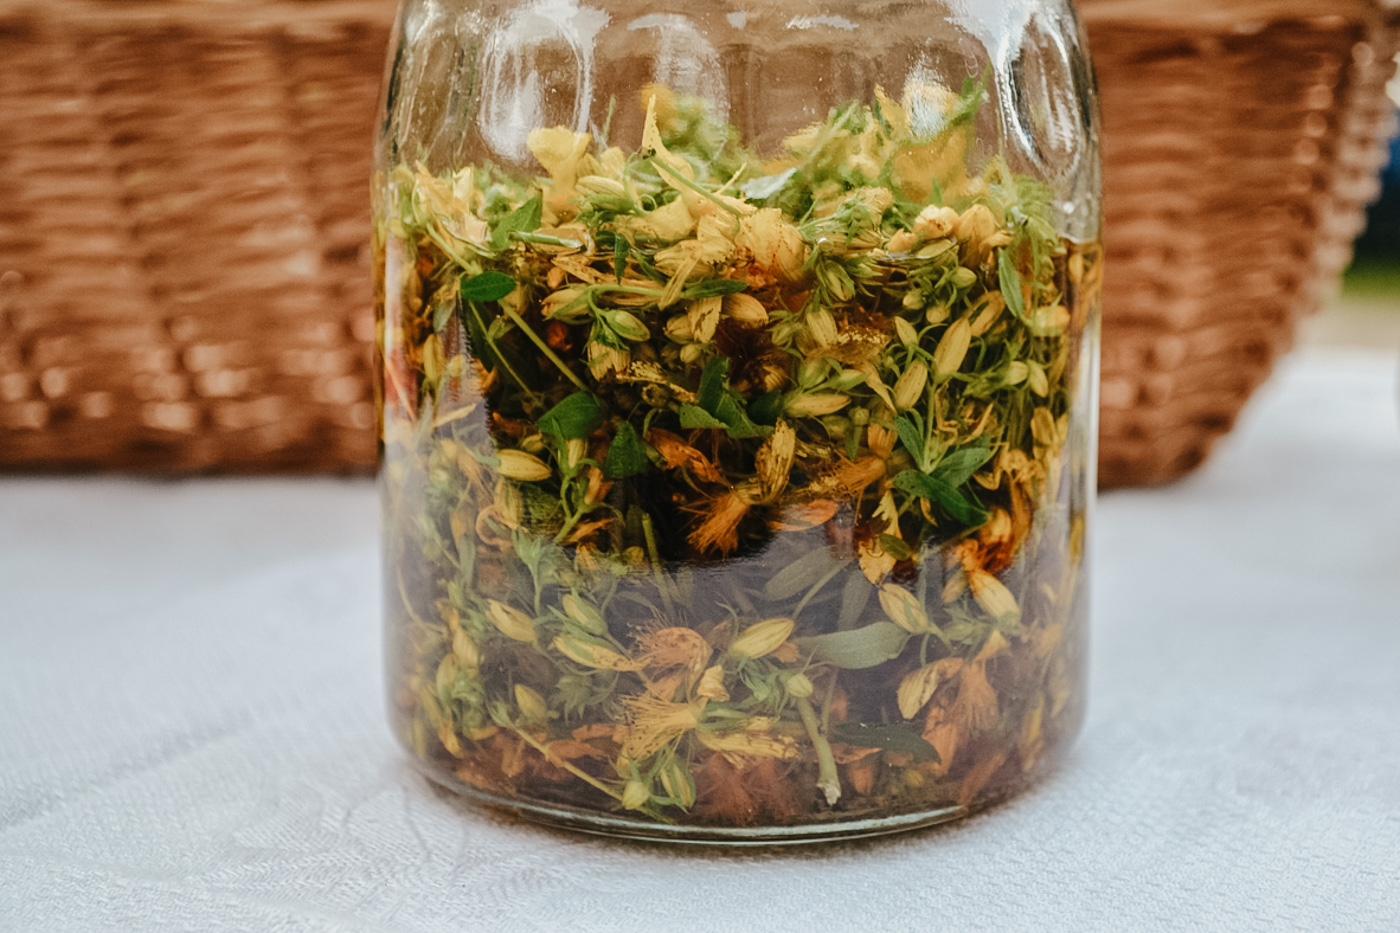 Herbal Academy's The Foraging Course – introduction to foraging and making wild foraged remedies